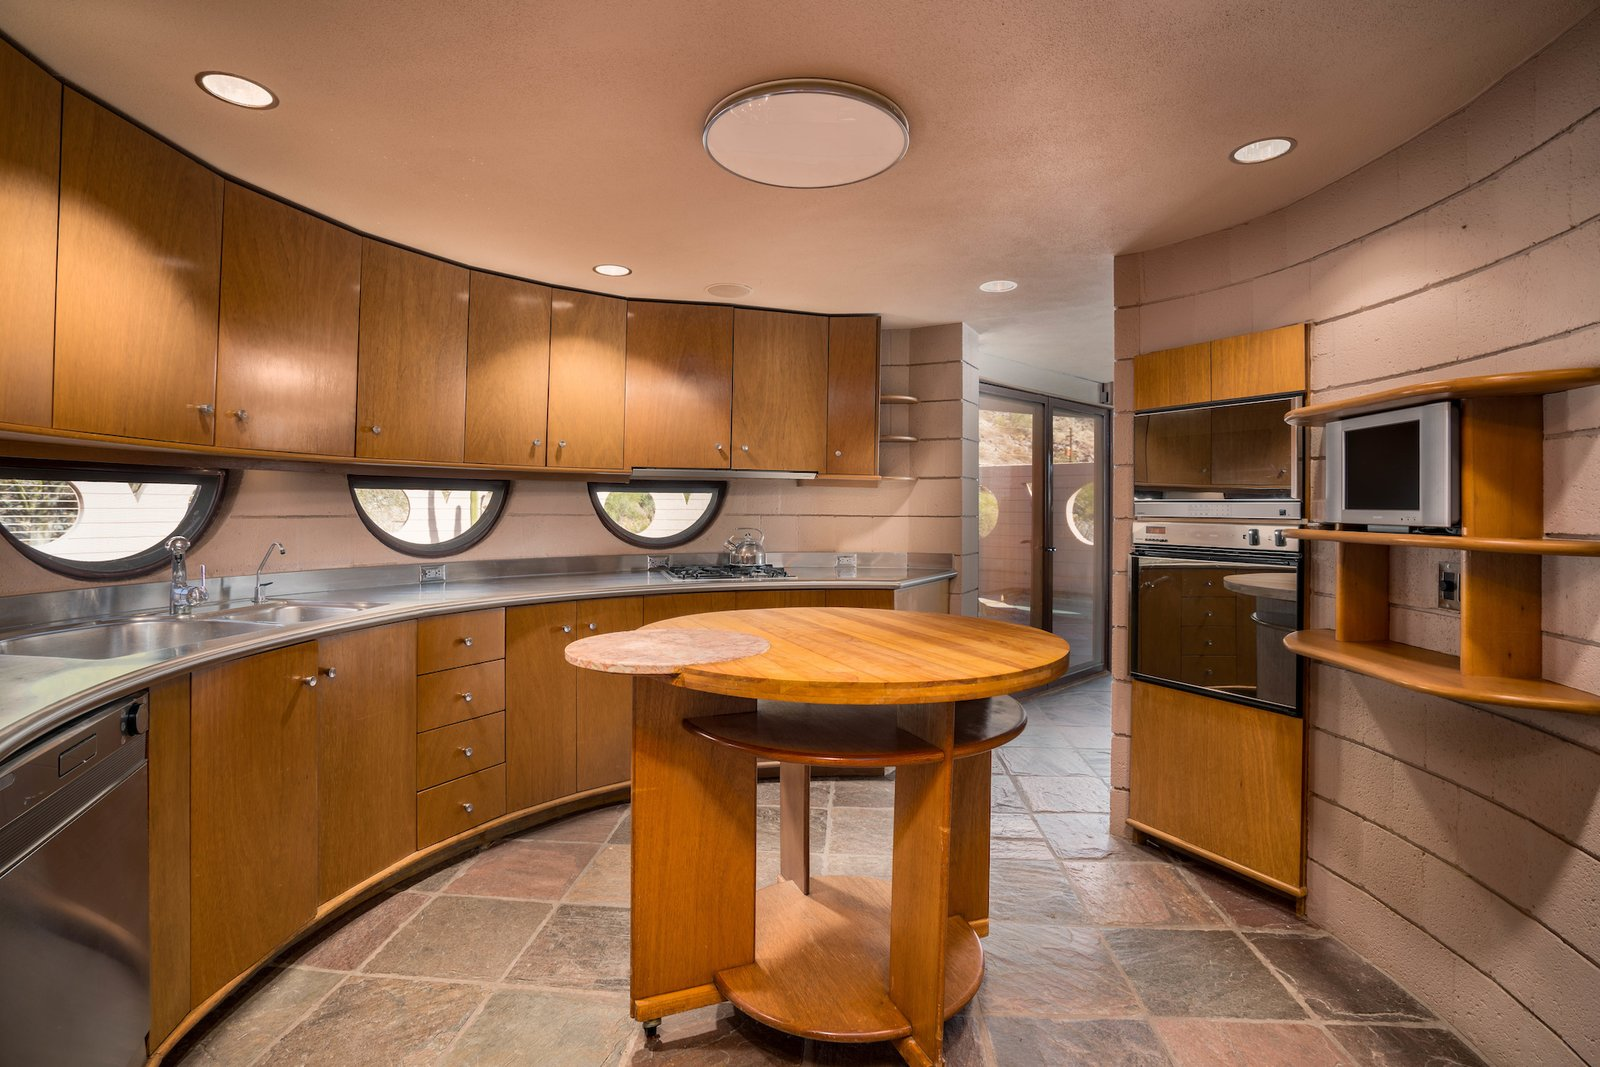 Kitchen, Dishwasher, Drop In, Cooktops, Recessed, Range, Metal, Microwave, Wood, Range Hood, and Ceiling  Best Kitchen Microwave Drop In Range Hood Recessed Photos from The Last House Designed by Frank Lloyd Wright Hits the Market at $2.98M